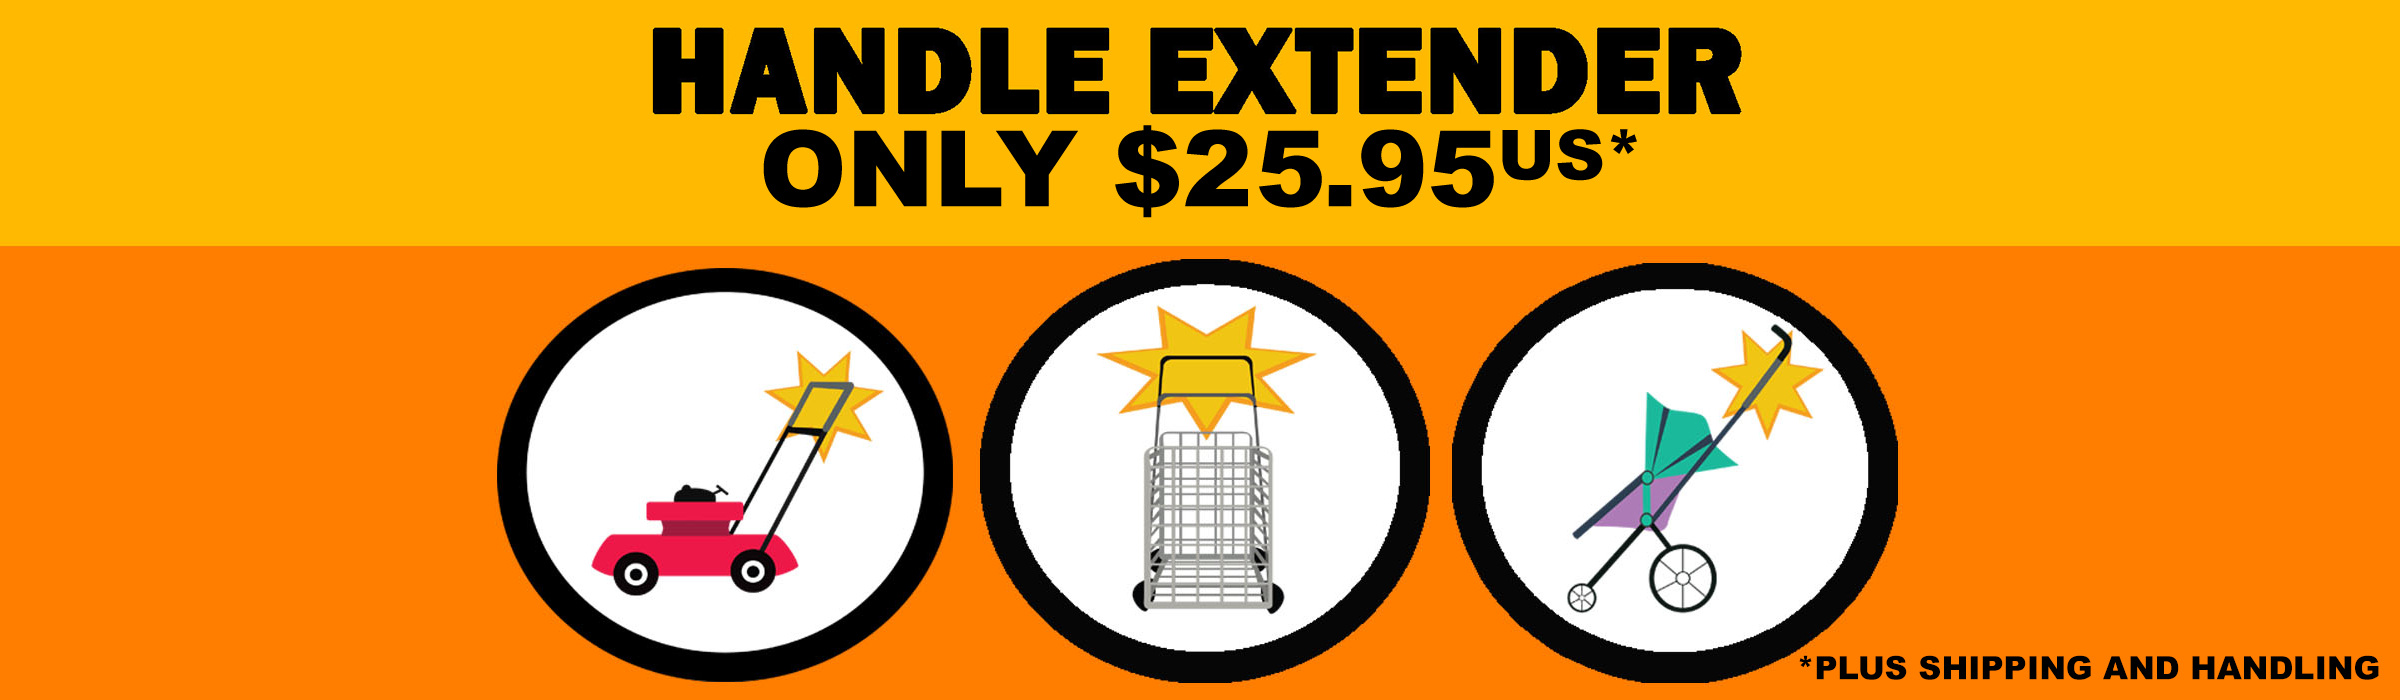 Welcome to the Handle Extender website!